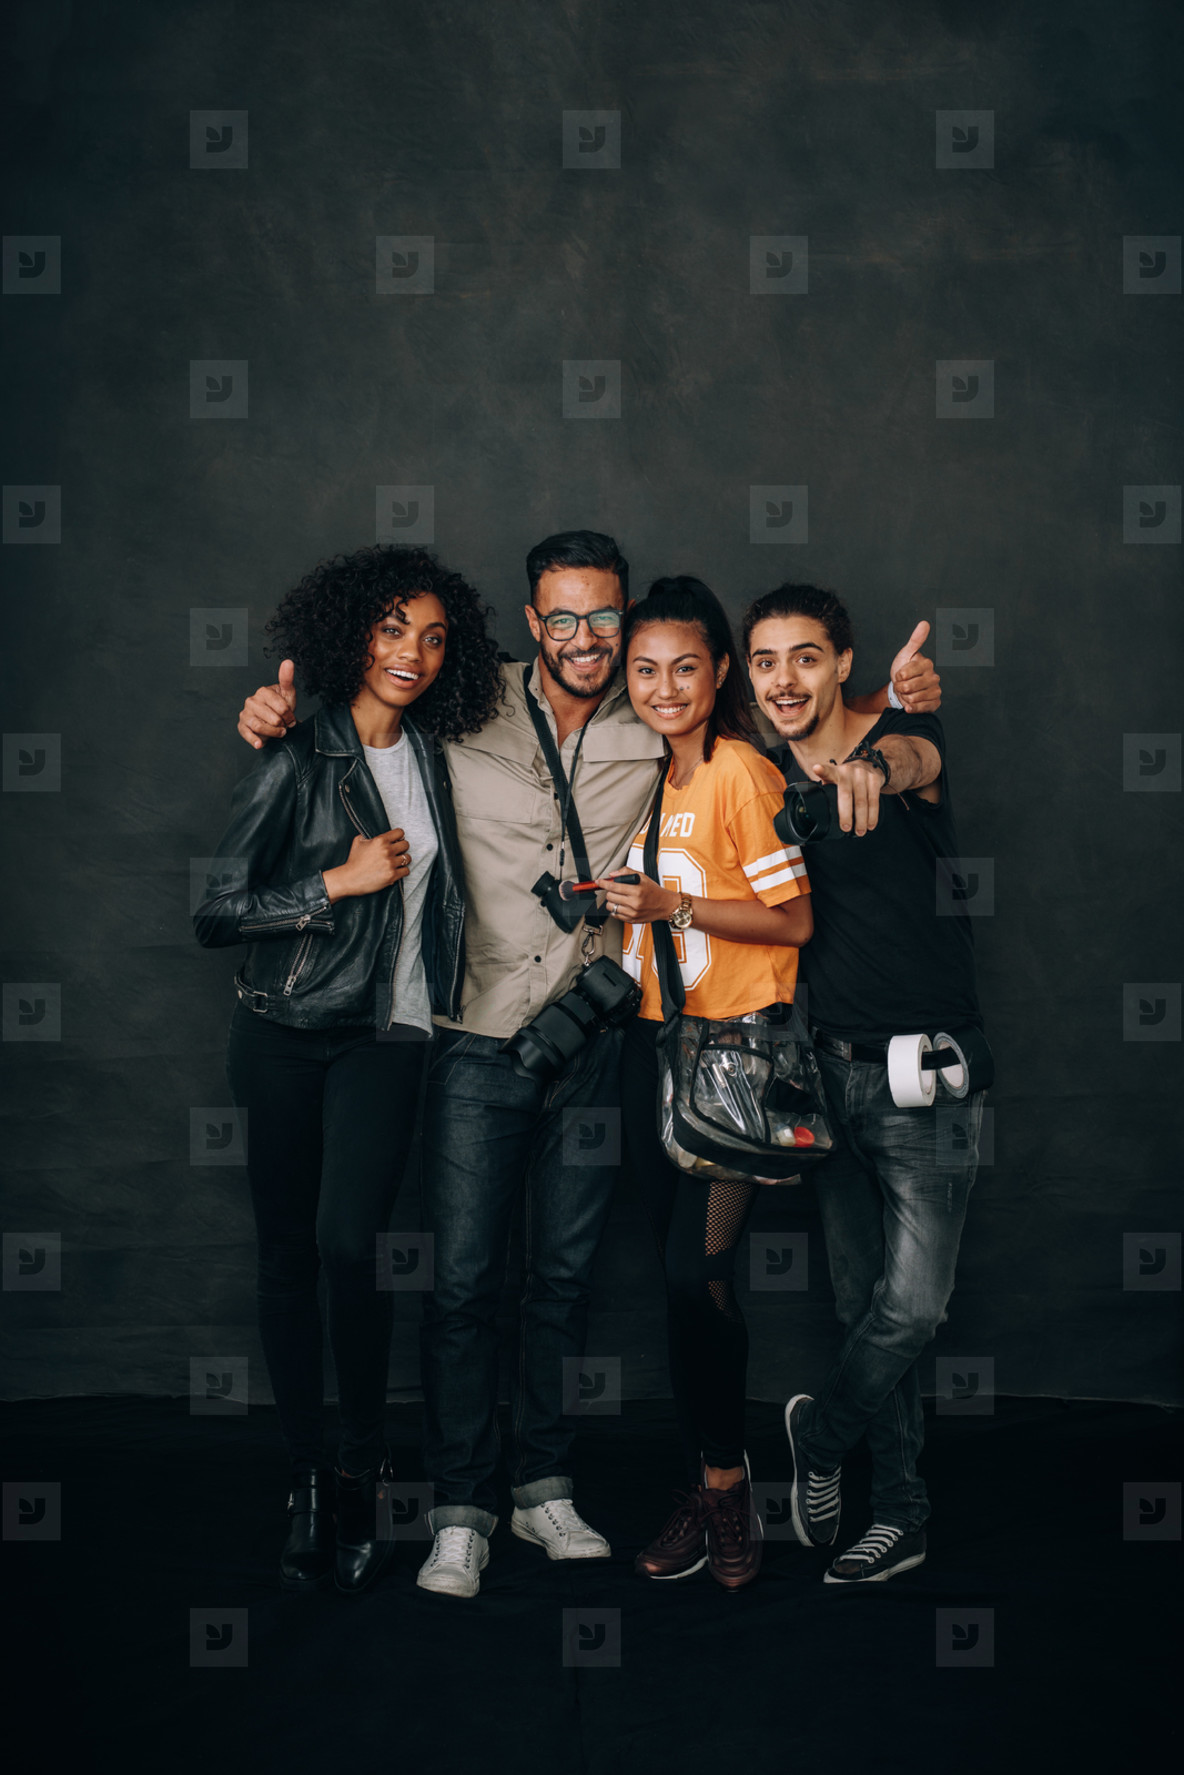 Photography team during a photo shoot in a studio